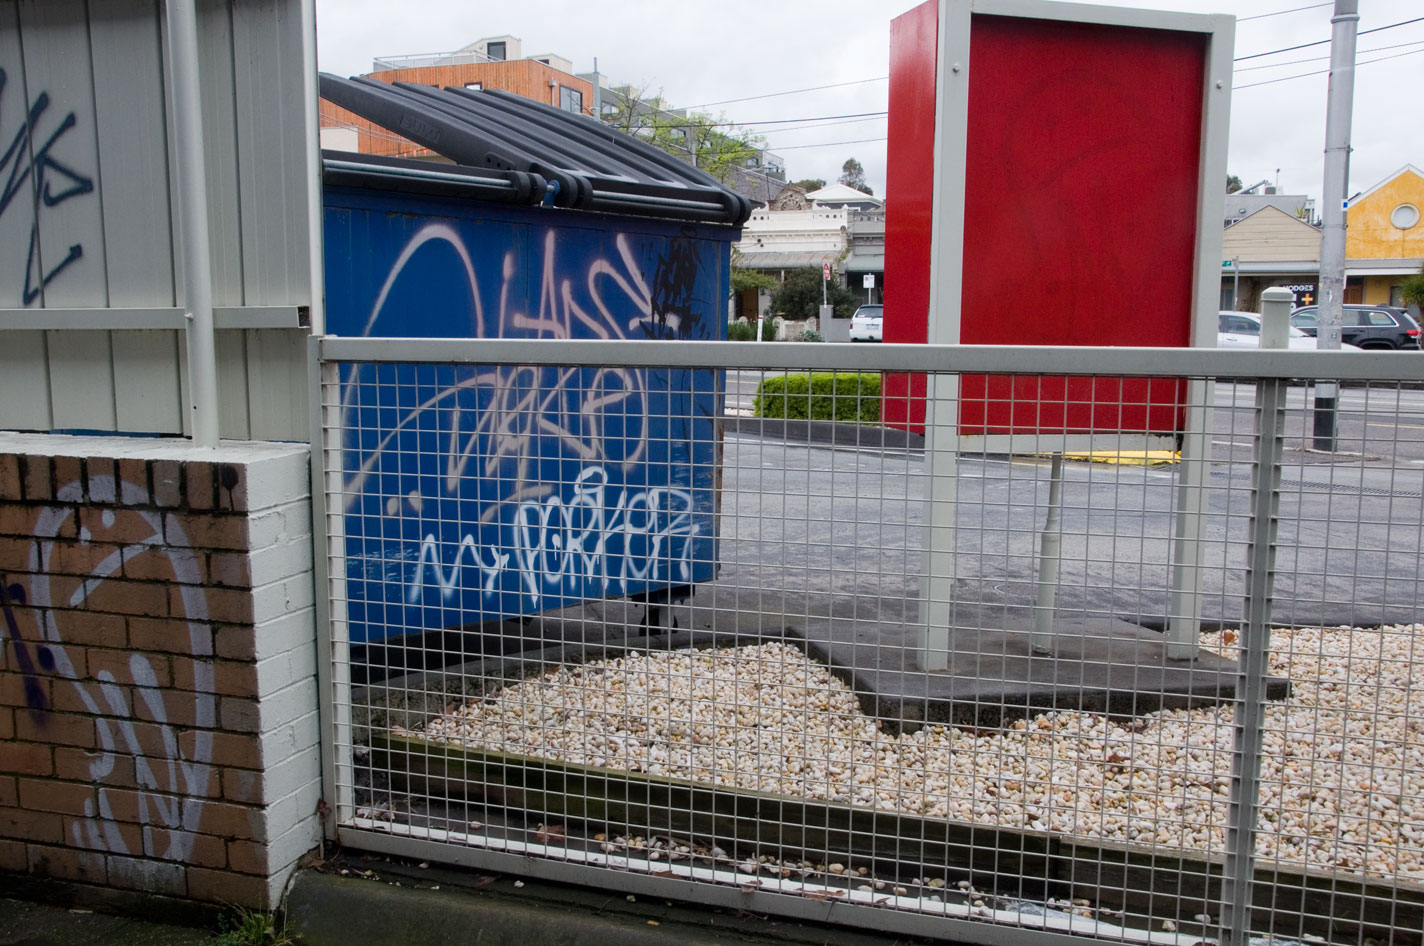 all-those-shapes_-_mio_-_ghost-of-a-ghost_-_north-fitzroy